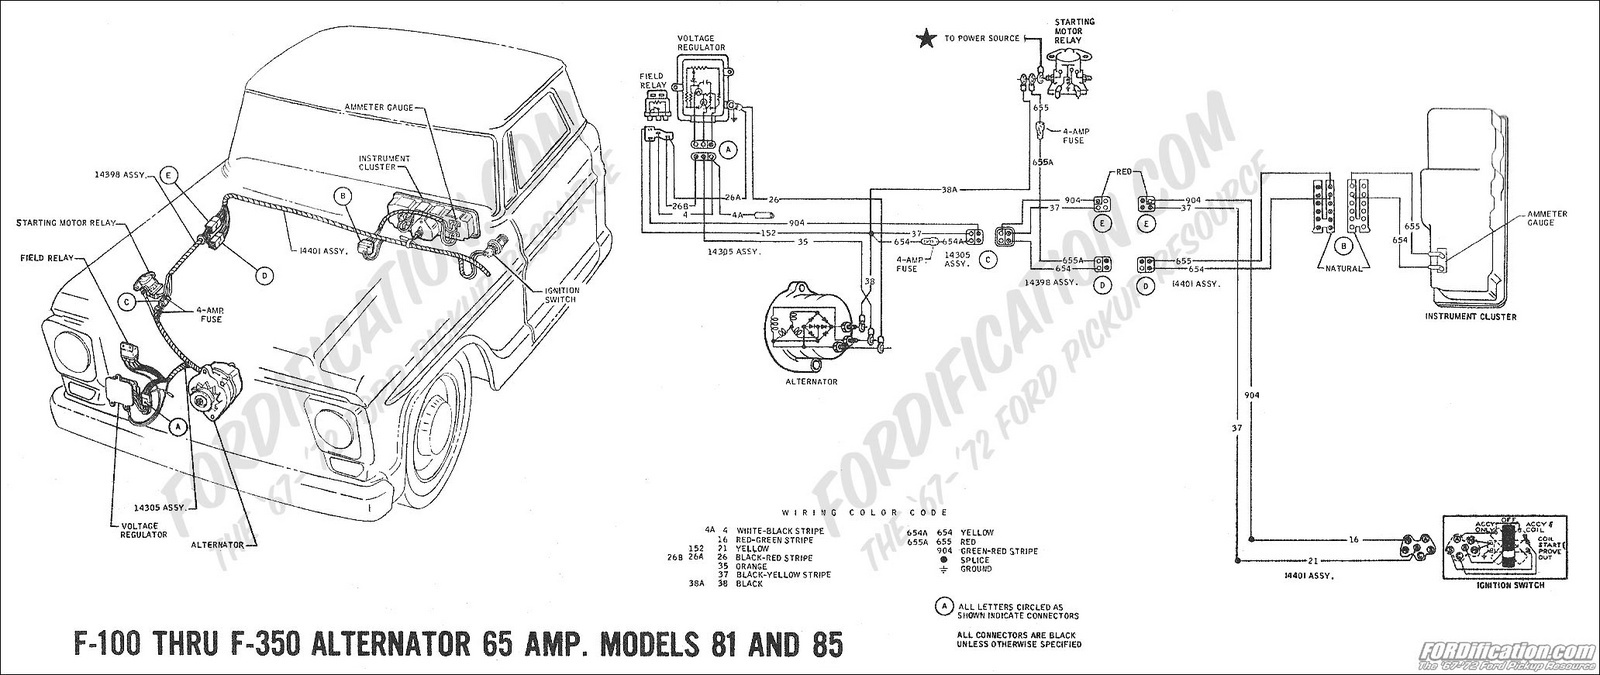 390 F100 Wiring Diagram 75 Books Of Topologies Commercial Grade Ford F 100 Questions I Have A 73 No Power To The